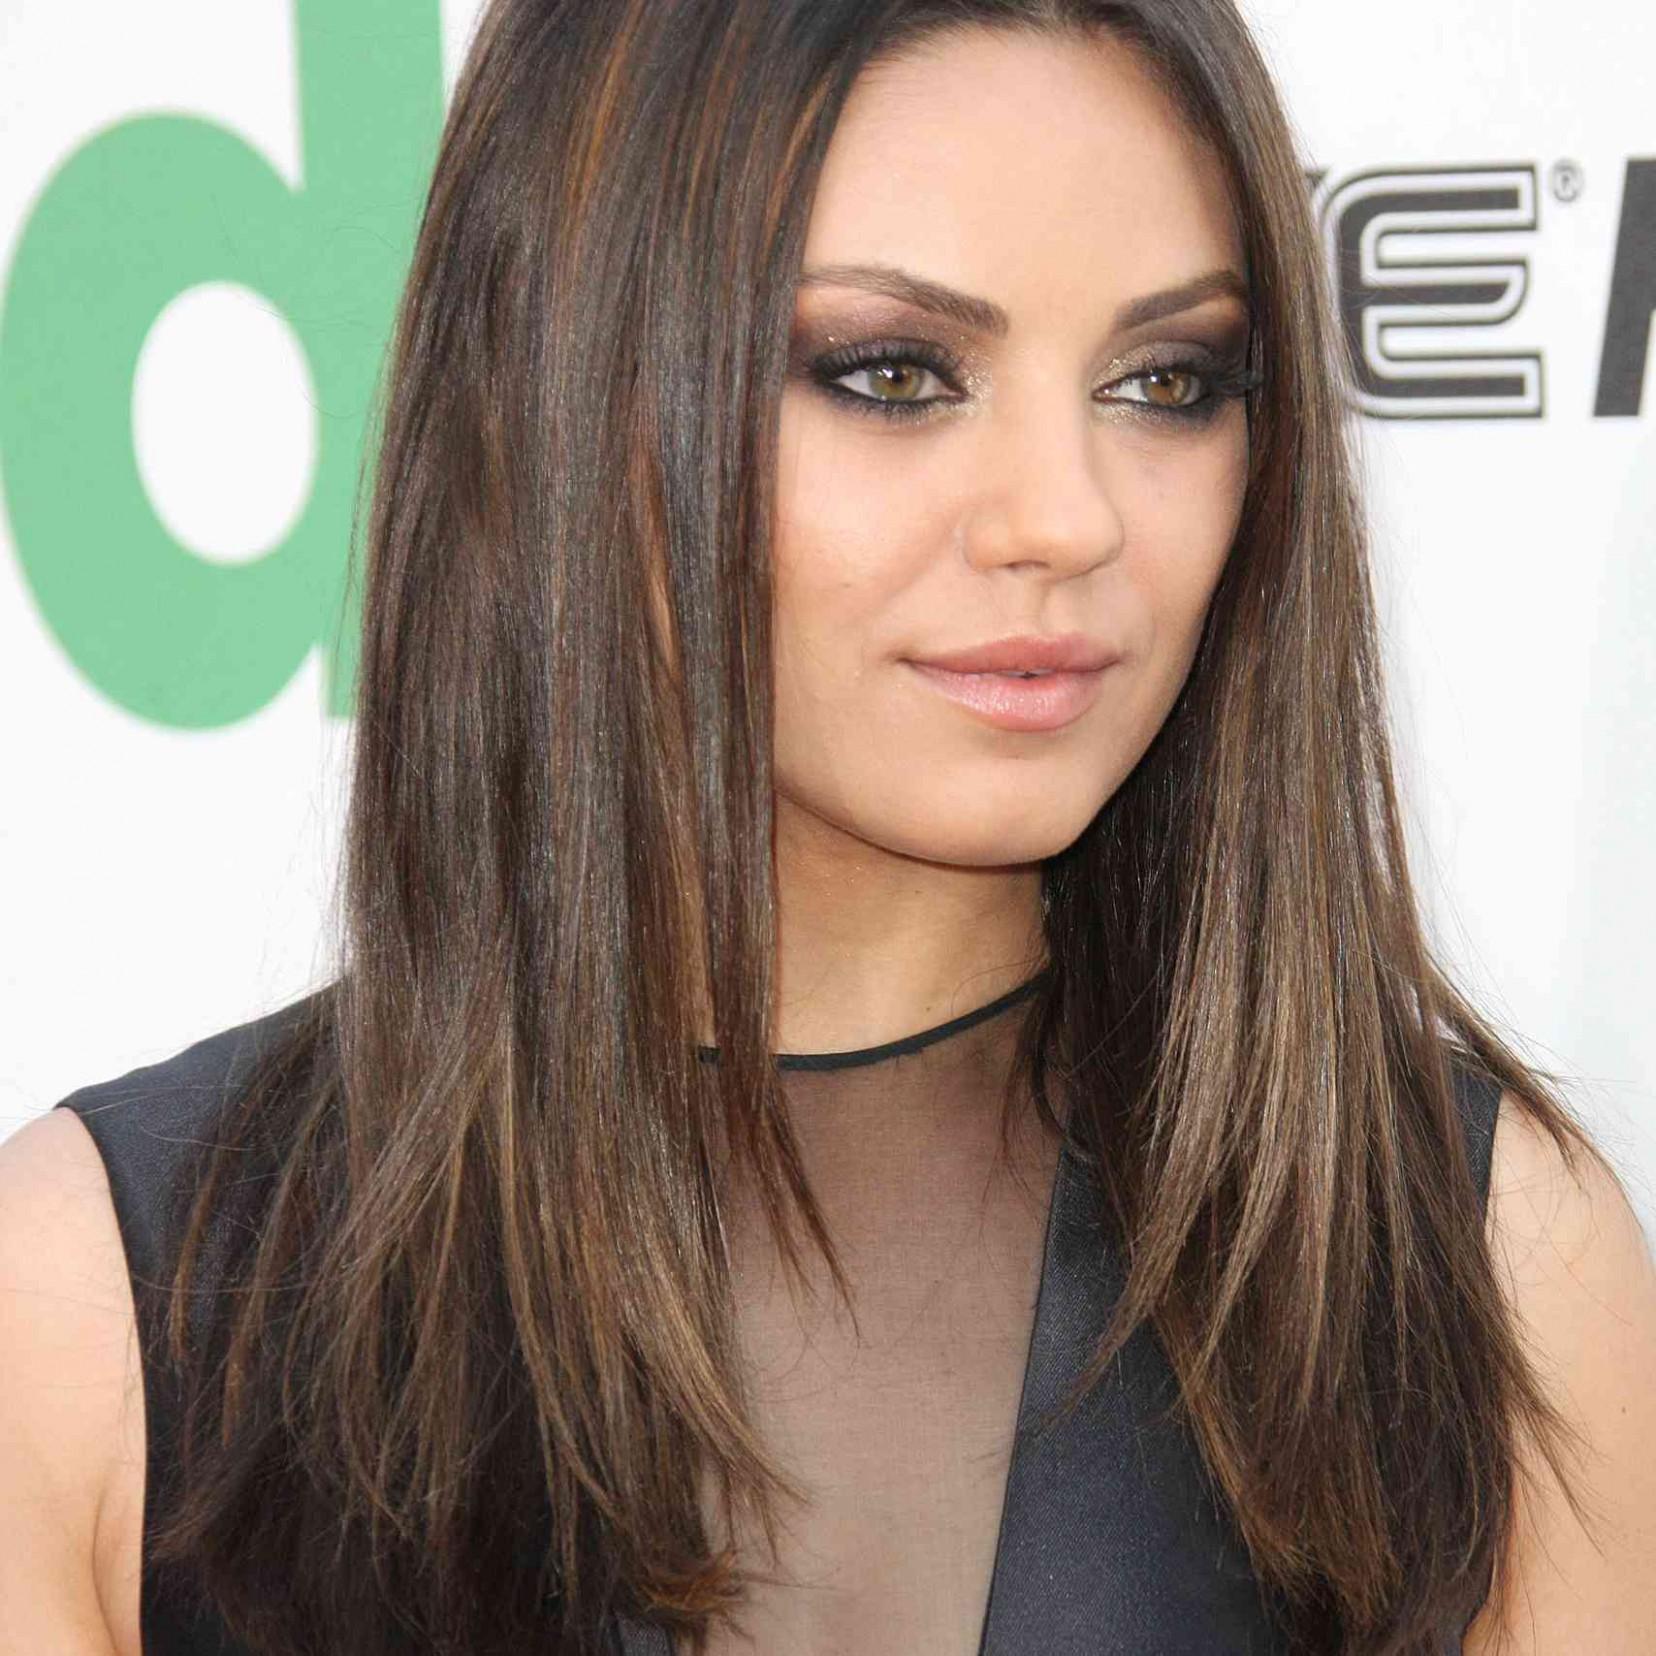 9 of the Best Hairstyles for Round Faces